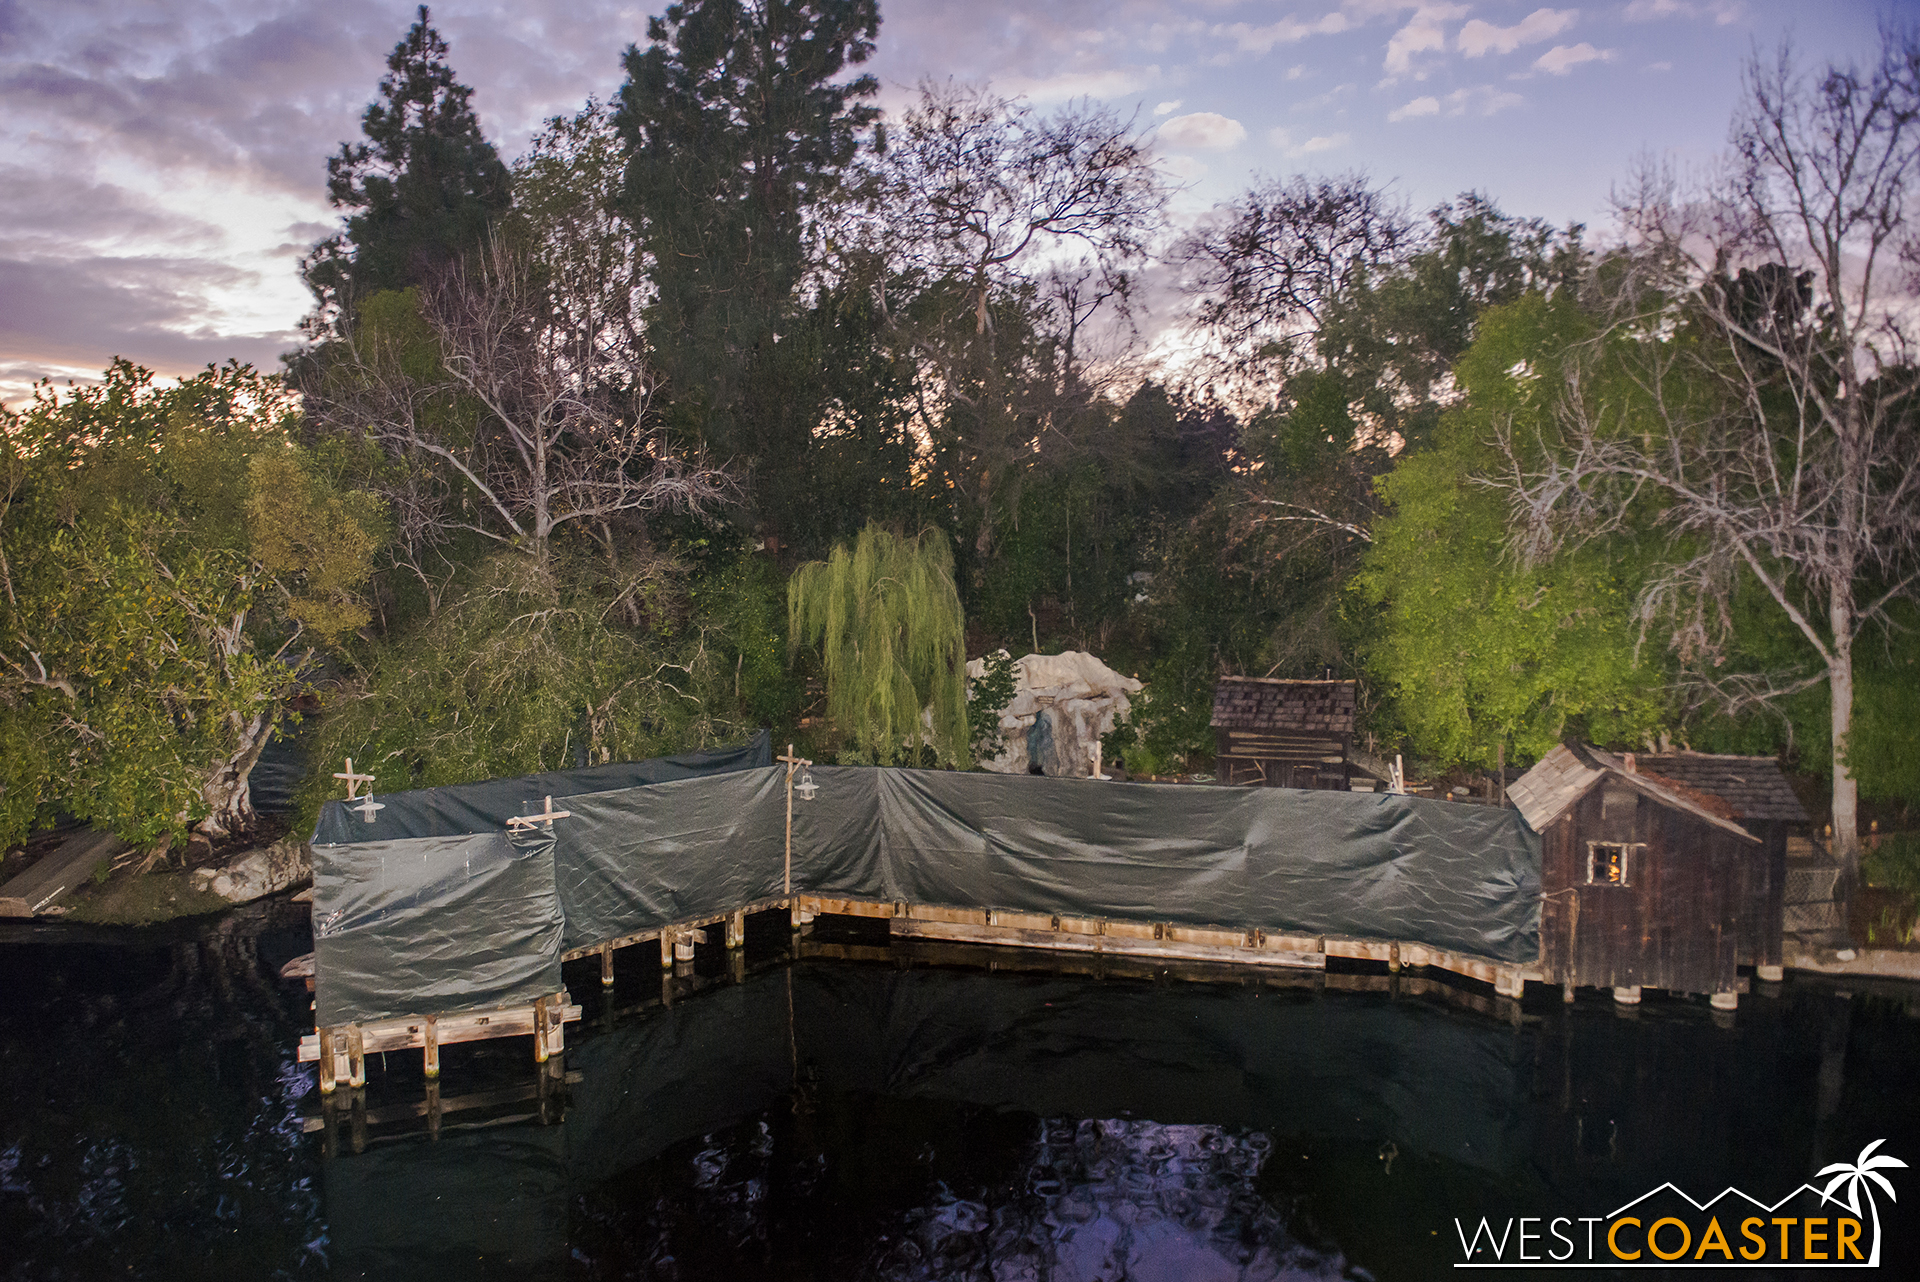 Tarps on the right side conceal the launch point for a new Black Cauldron water float.